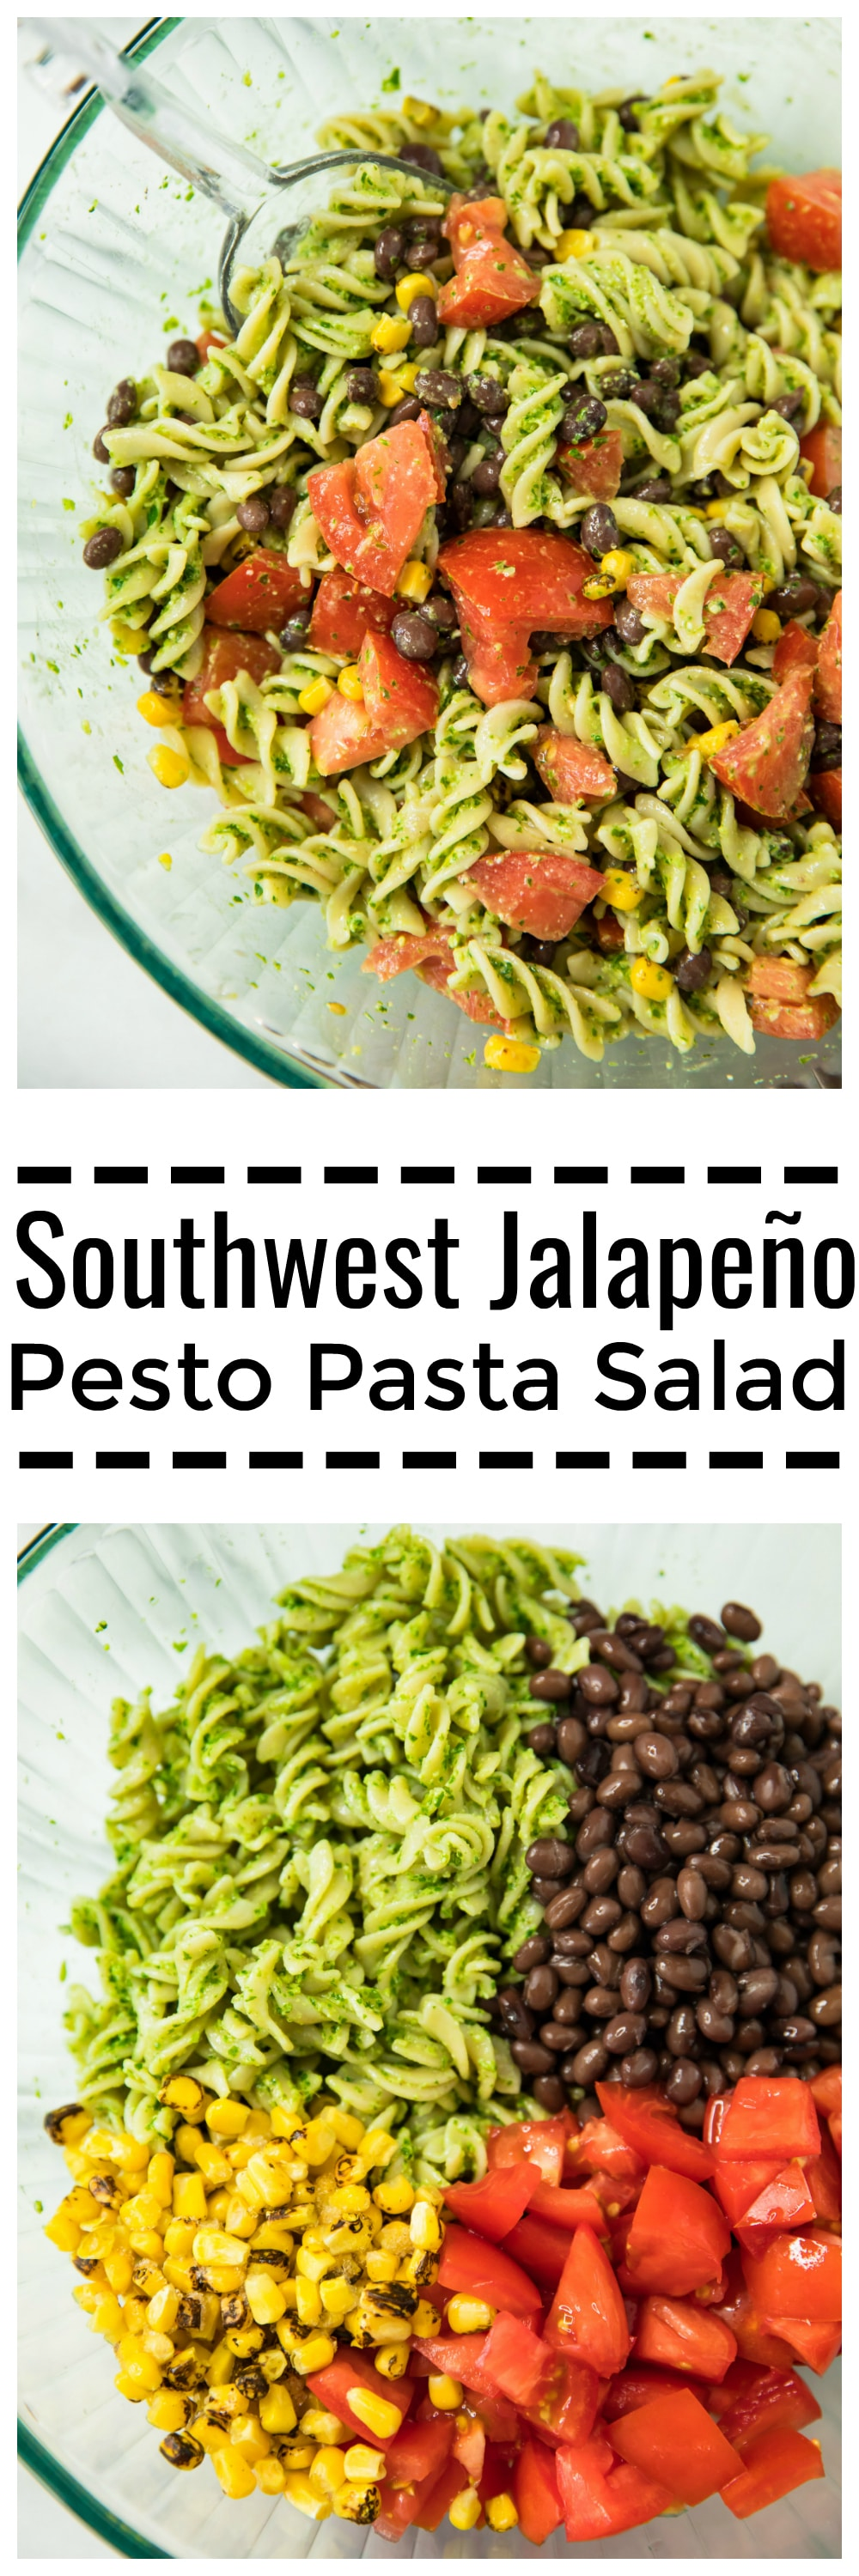 This Southwest Jalapeño Pesto Pasta Salad is the perfect cold pasta salad for potlucks, parties, or a quick and easy meal. It can be made in advance and your friends and family will love this pasta salad recipe!